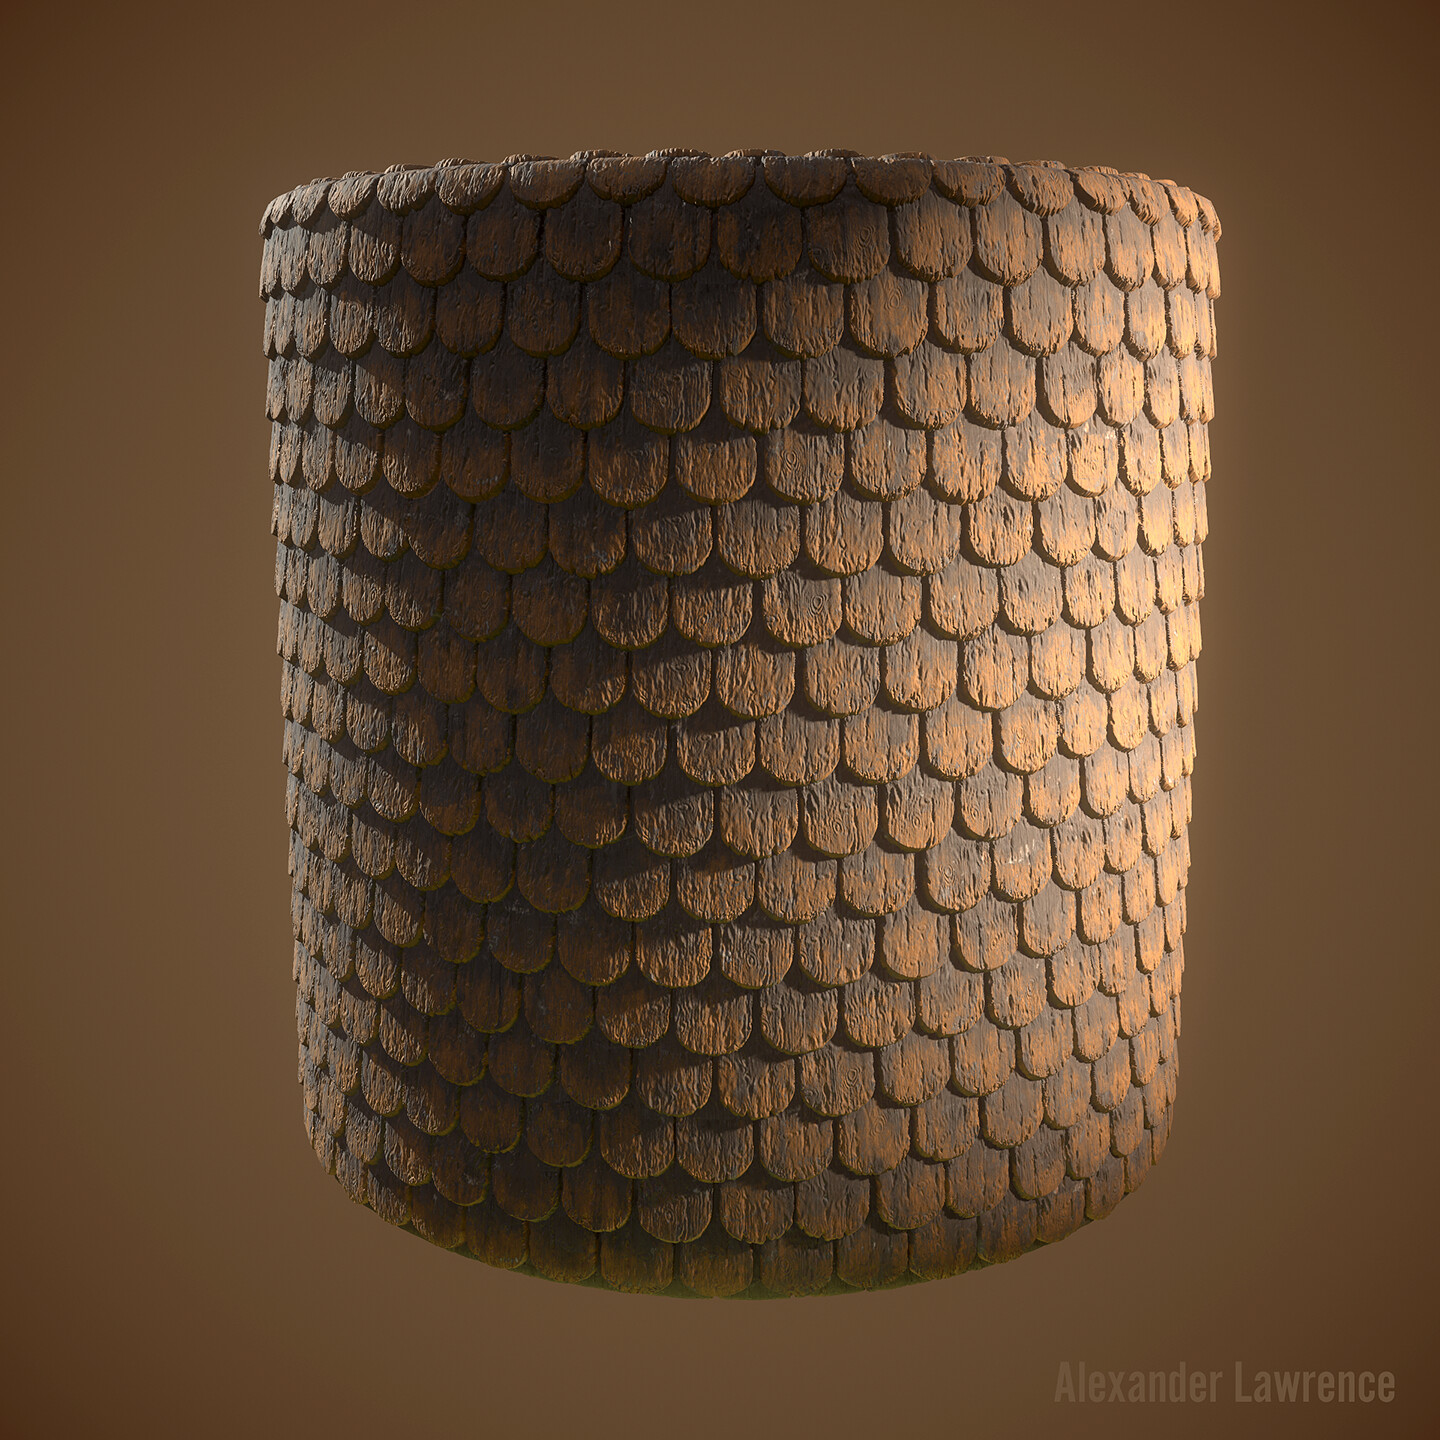 Wooden roof shingles that were painted orange. Created entirely in Substance Designer.